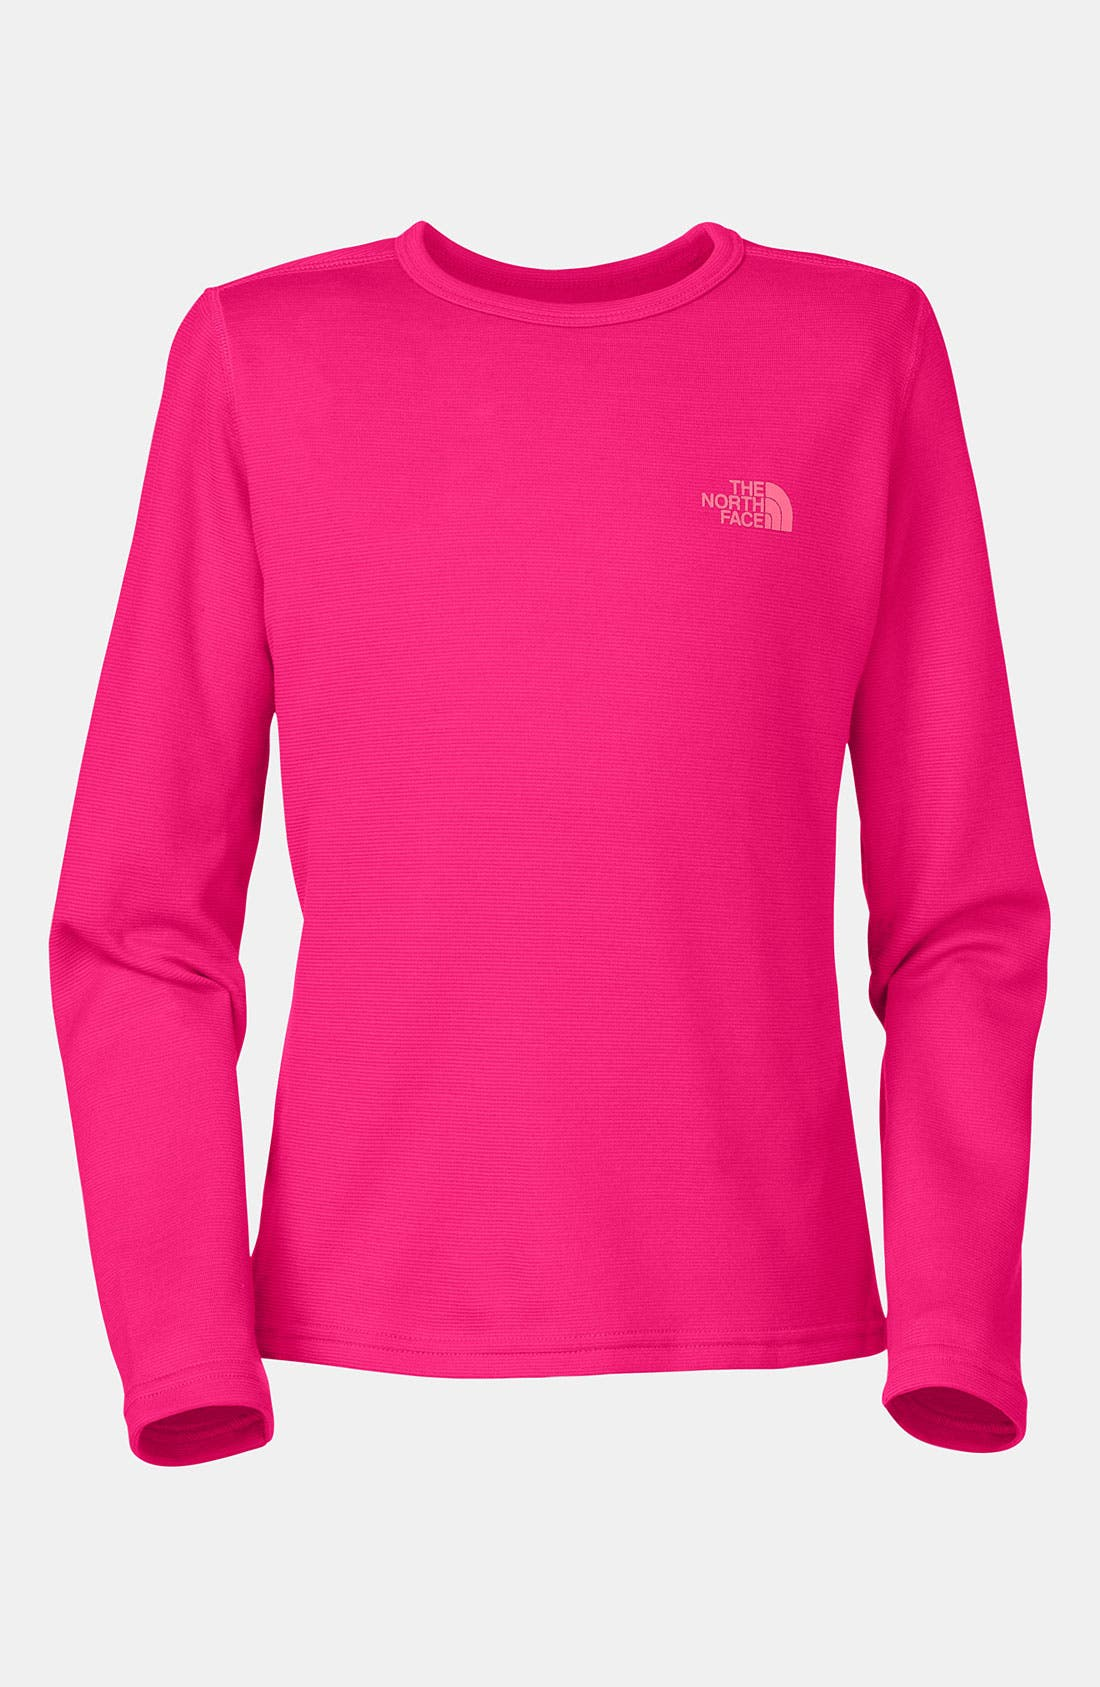 Main Image - The North Face 'Base Layer' Tee (Little Girls & Big Girls)